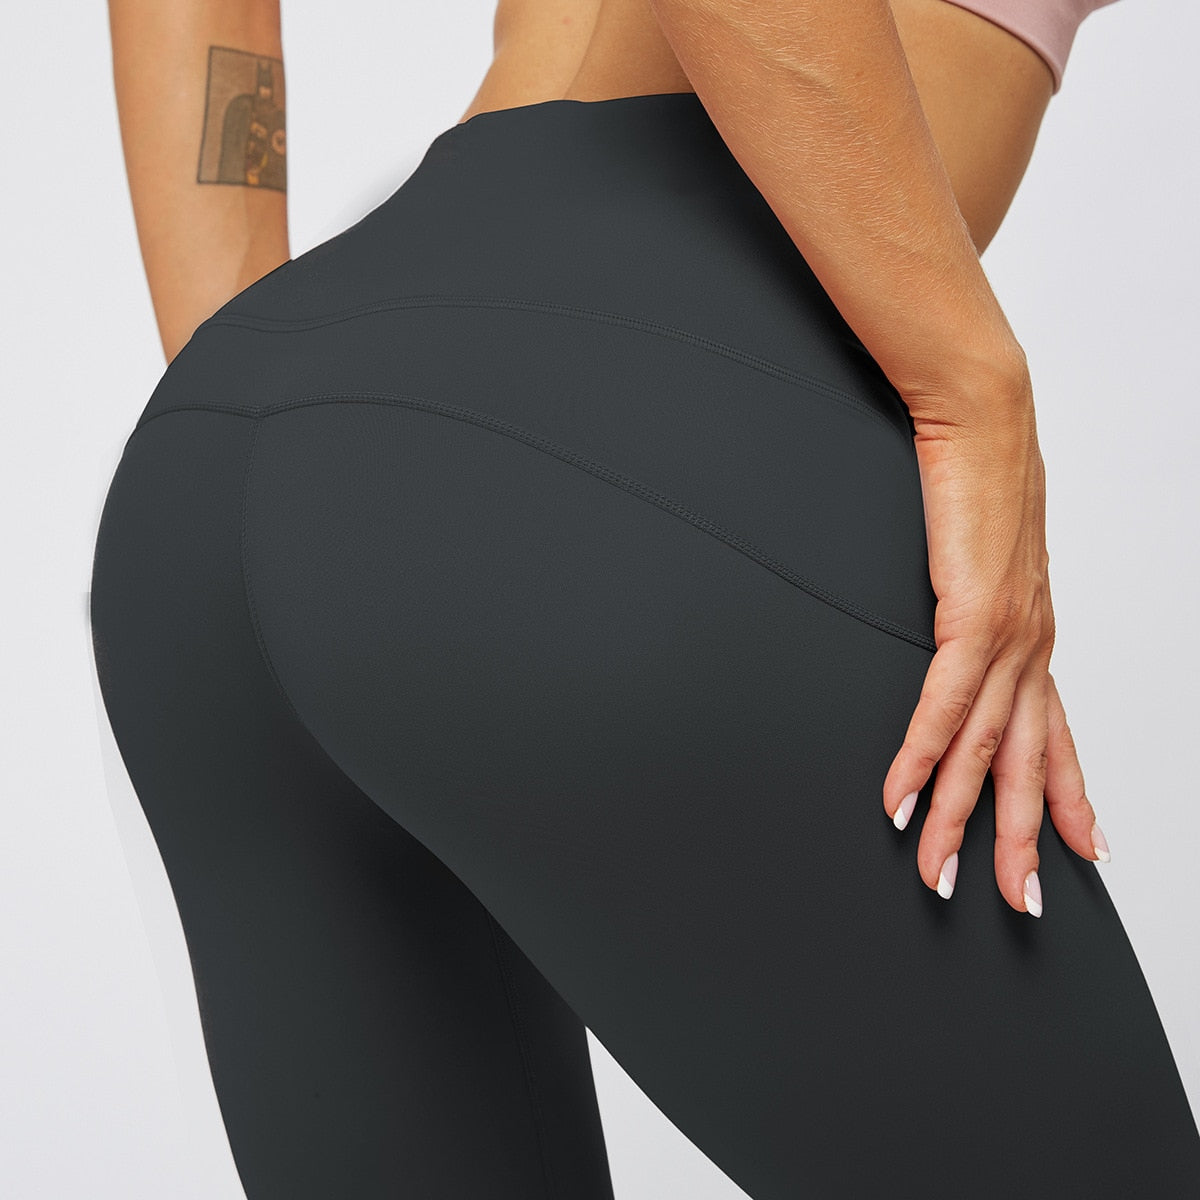 MAX Support Fitness Full Length Legging - Black - OUTCAST DISTRICT